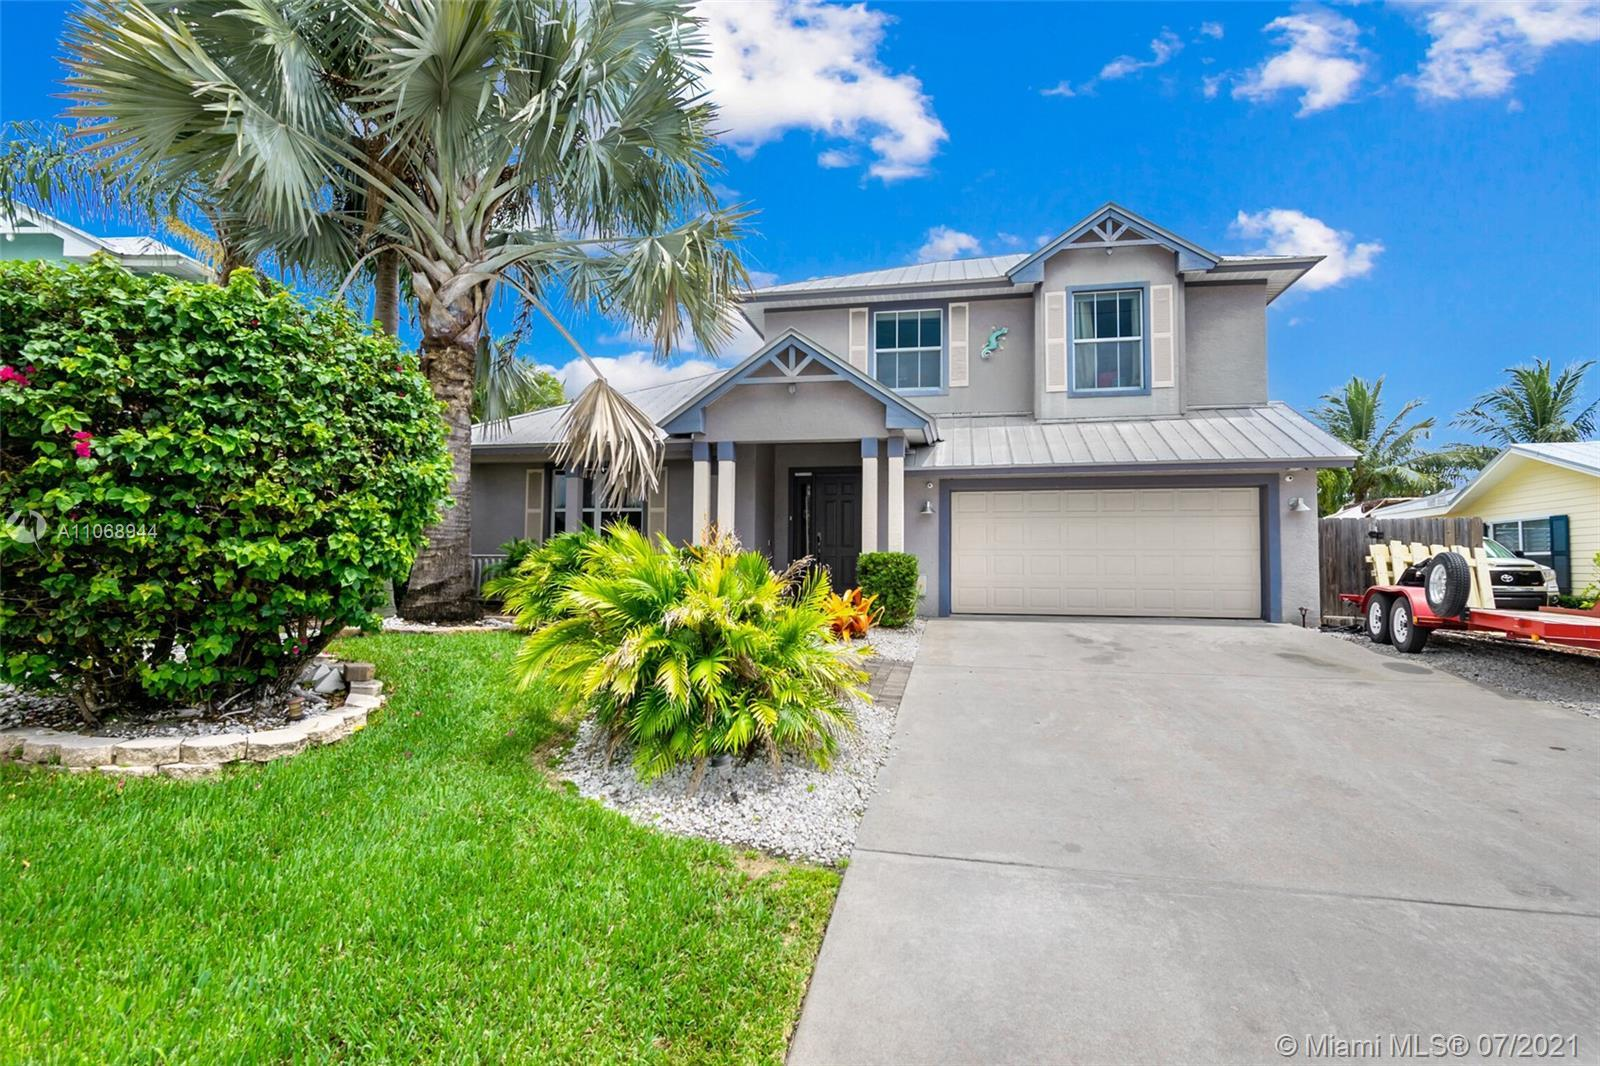 Amazing opportunity to live in the highly desirable community of Lighthouse Point! This CBS waterfro